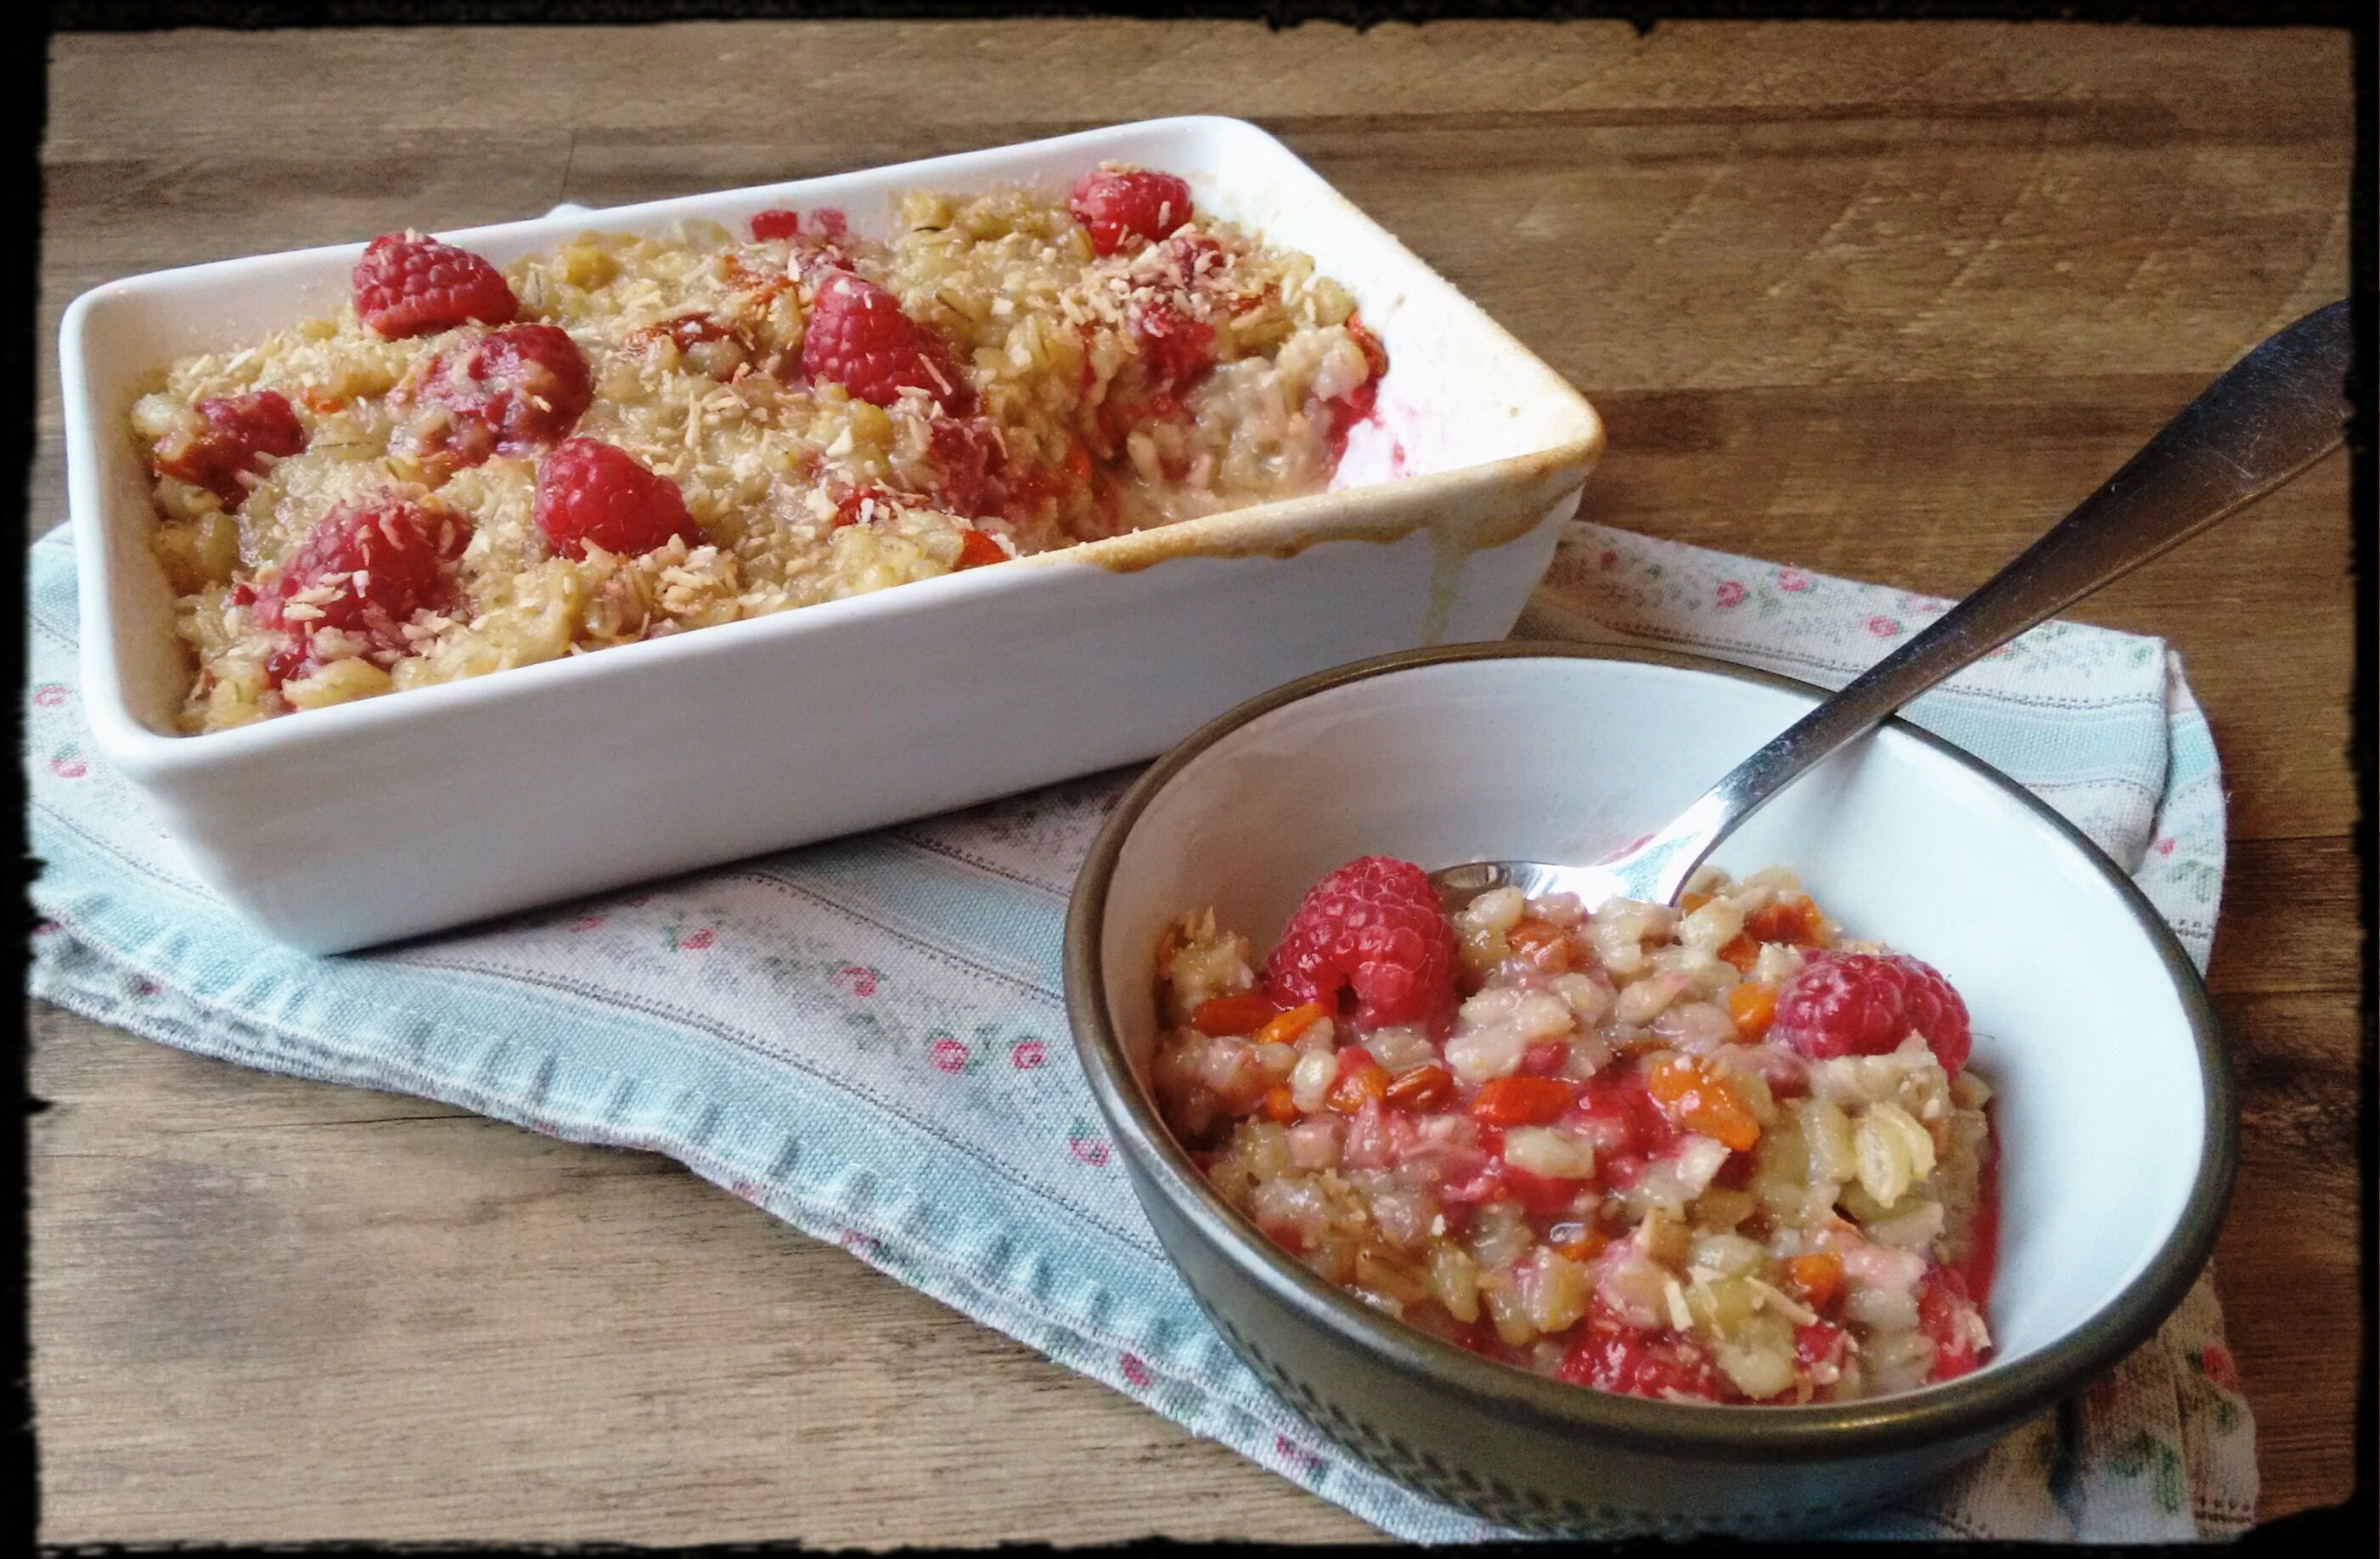 Pearl barley pudding with coconut and rapberries